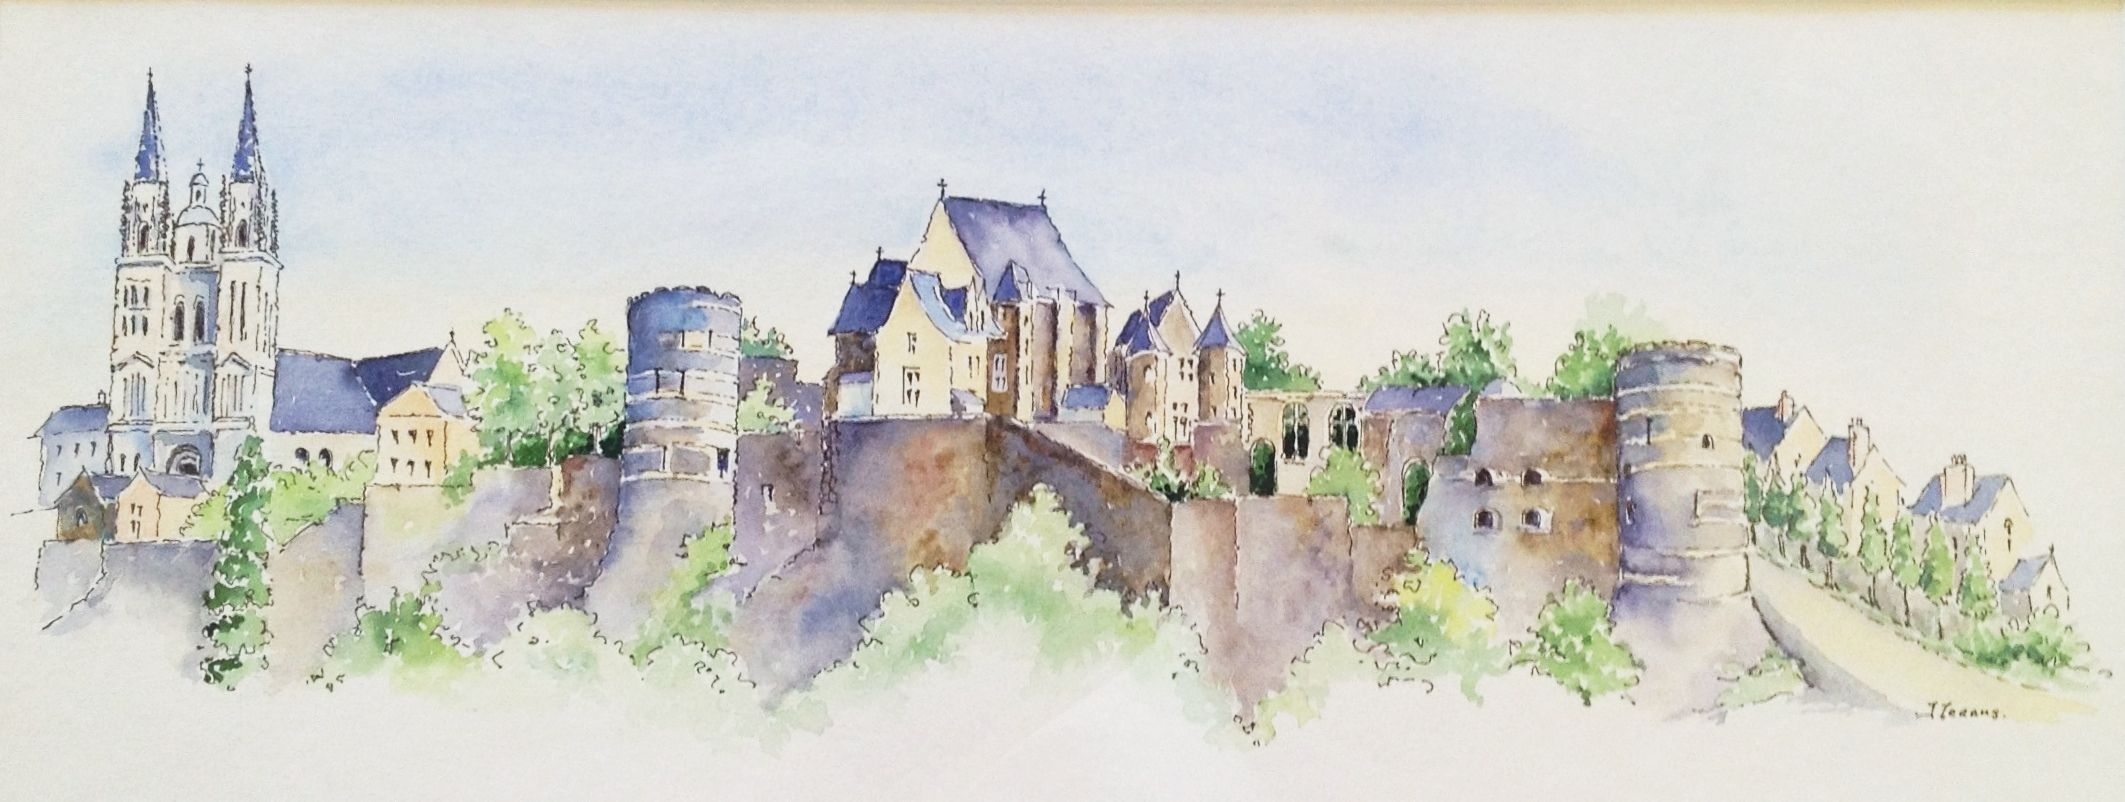 The Chateau At Angers Watercolour By Judith Jerams Loire Valley